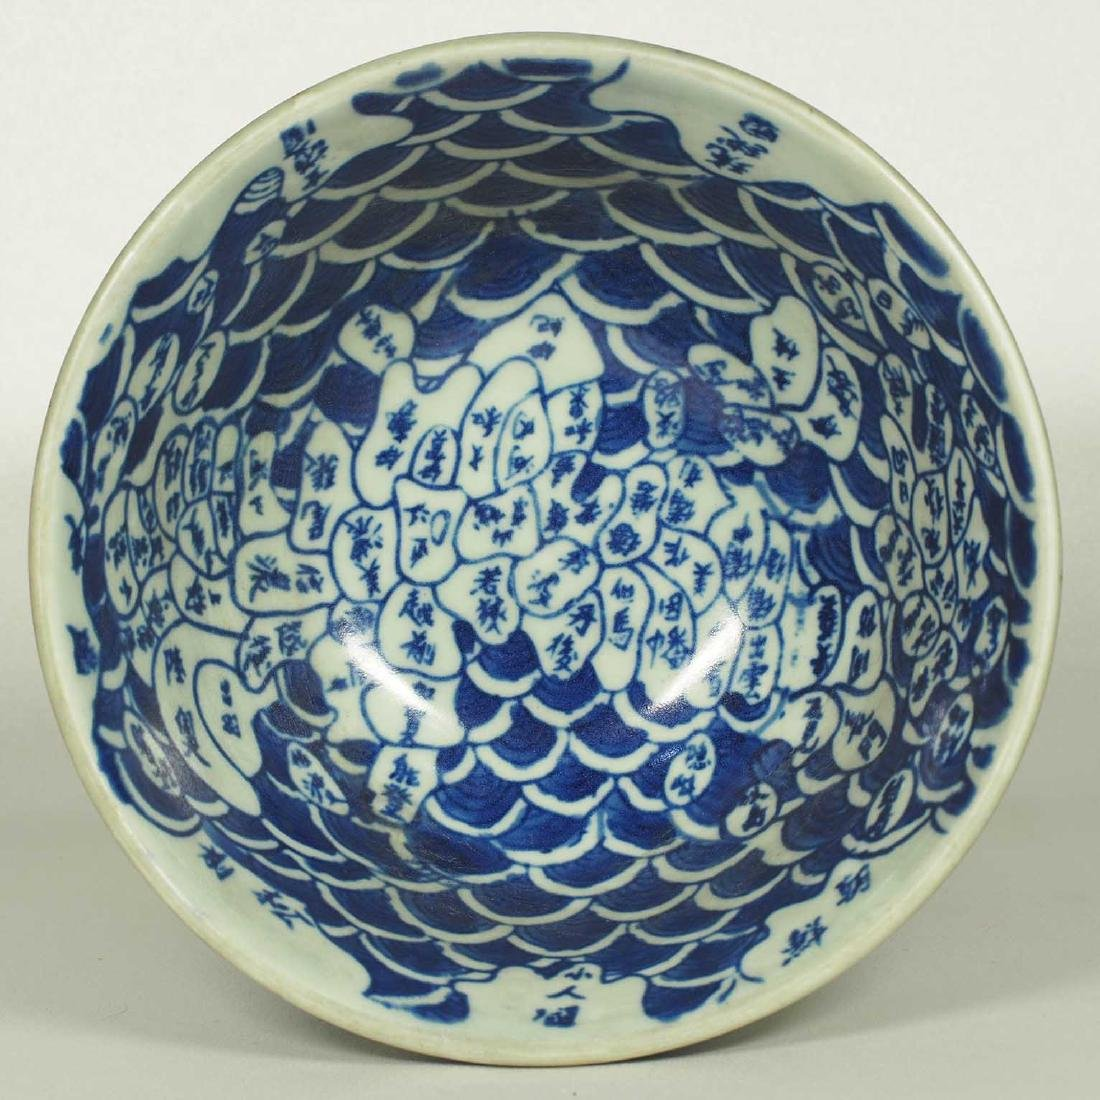 Stembowl with Territorial Map, late Qing Dynasty - 5